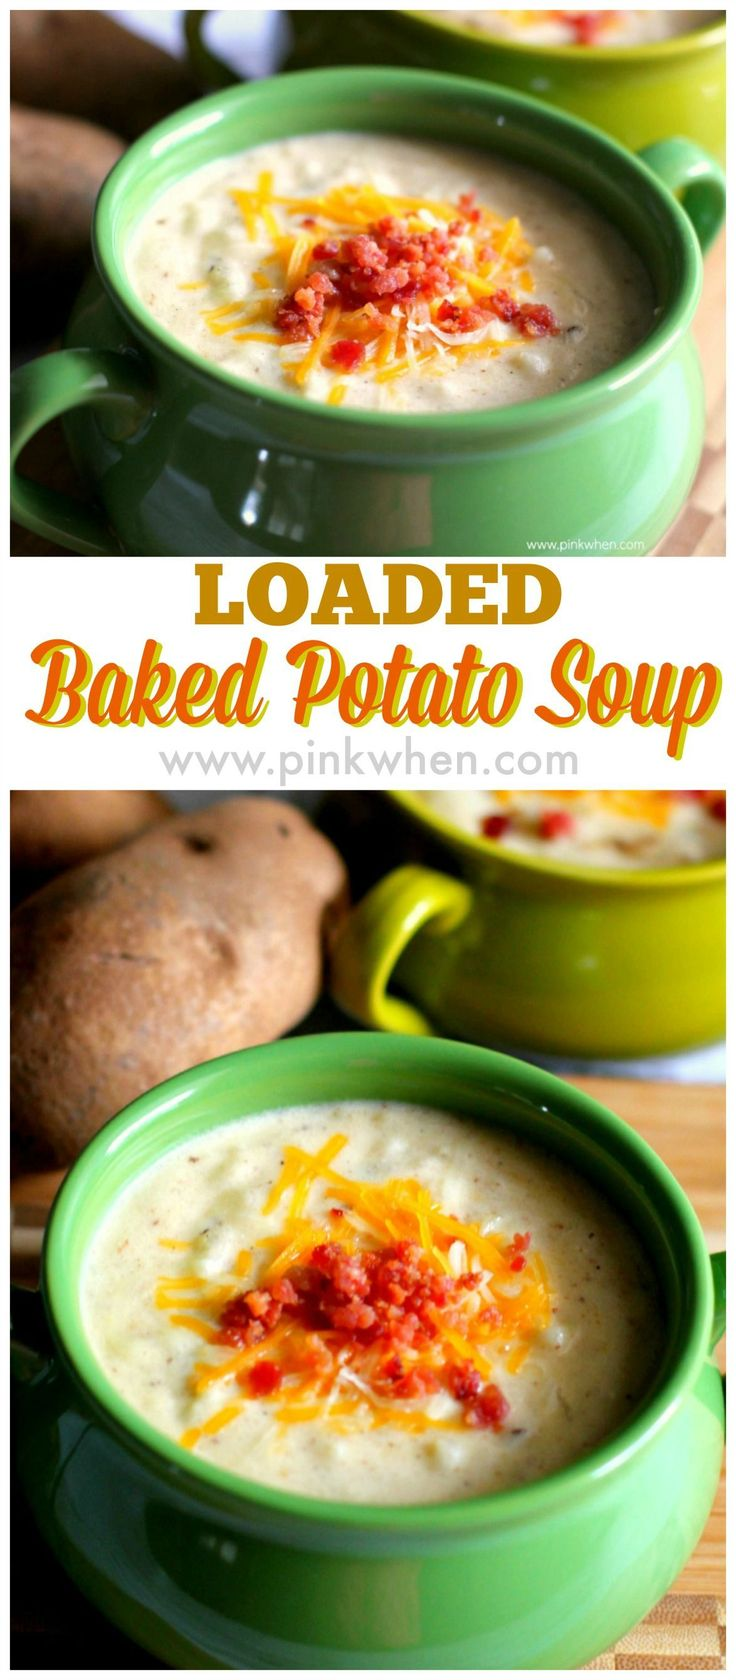 One of my all time favorites! Loaded baked potato soup. YUM!